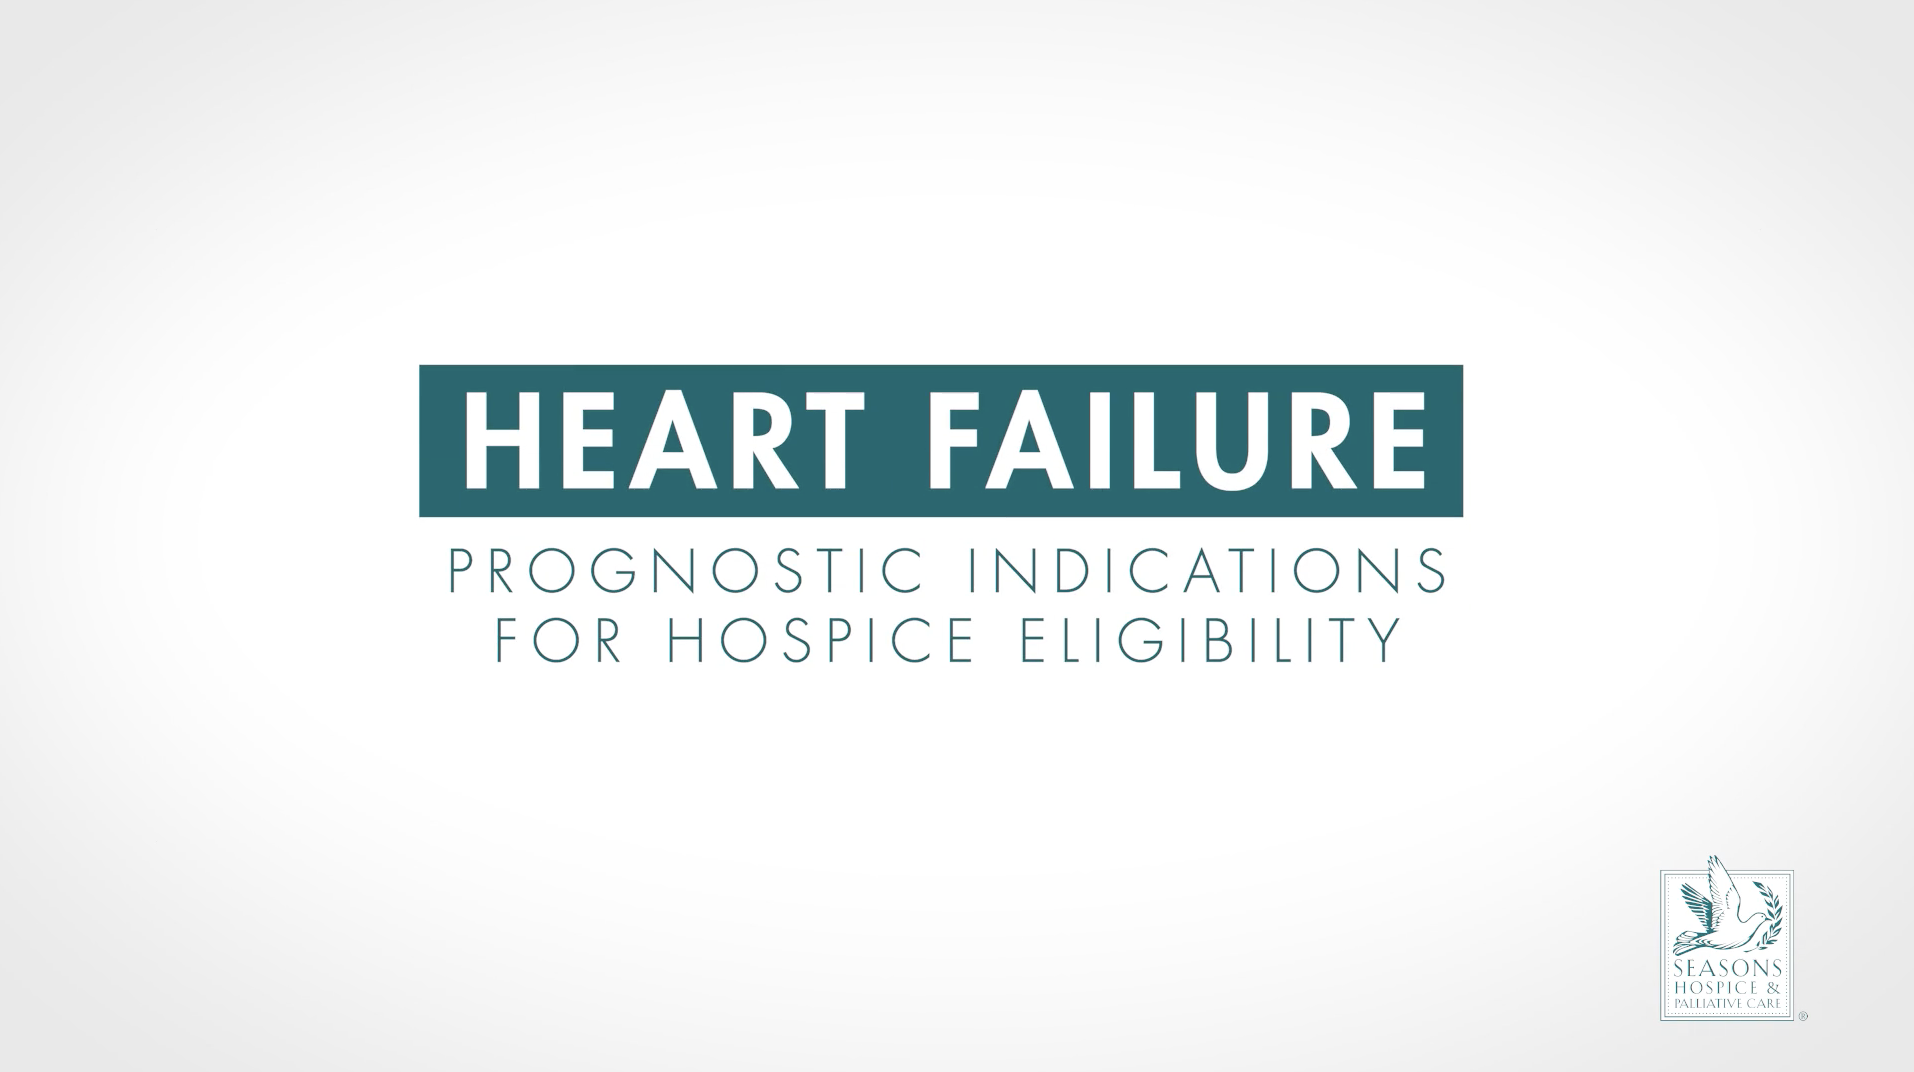 When is a patient with congestive heart failure ready for hospice?